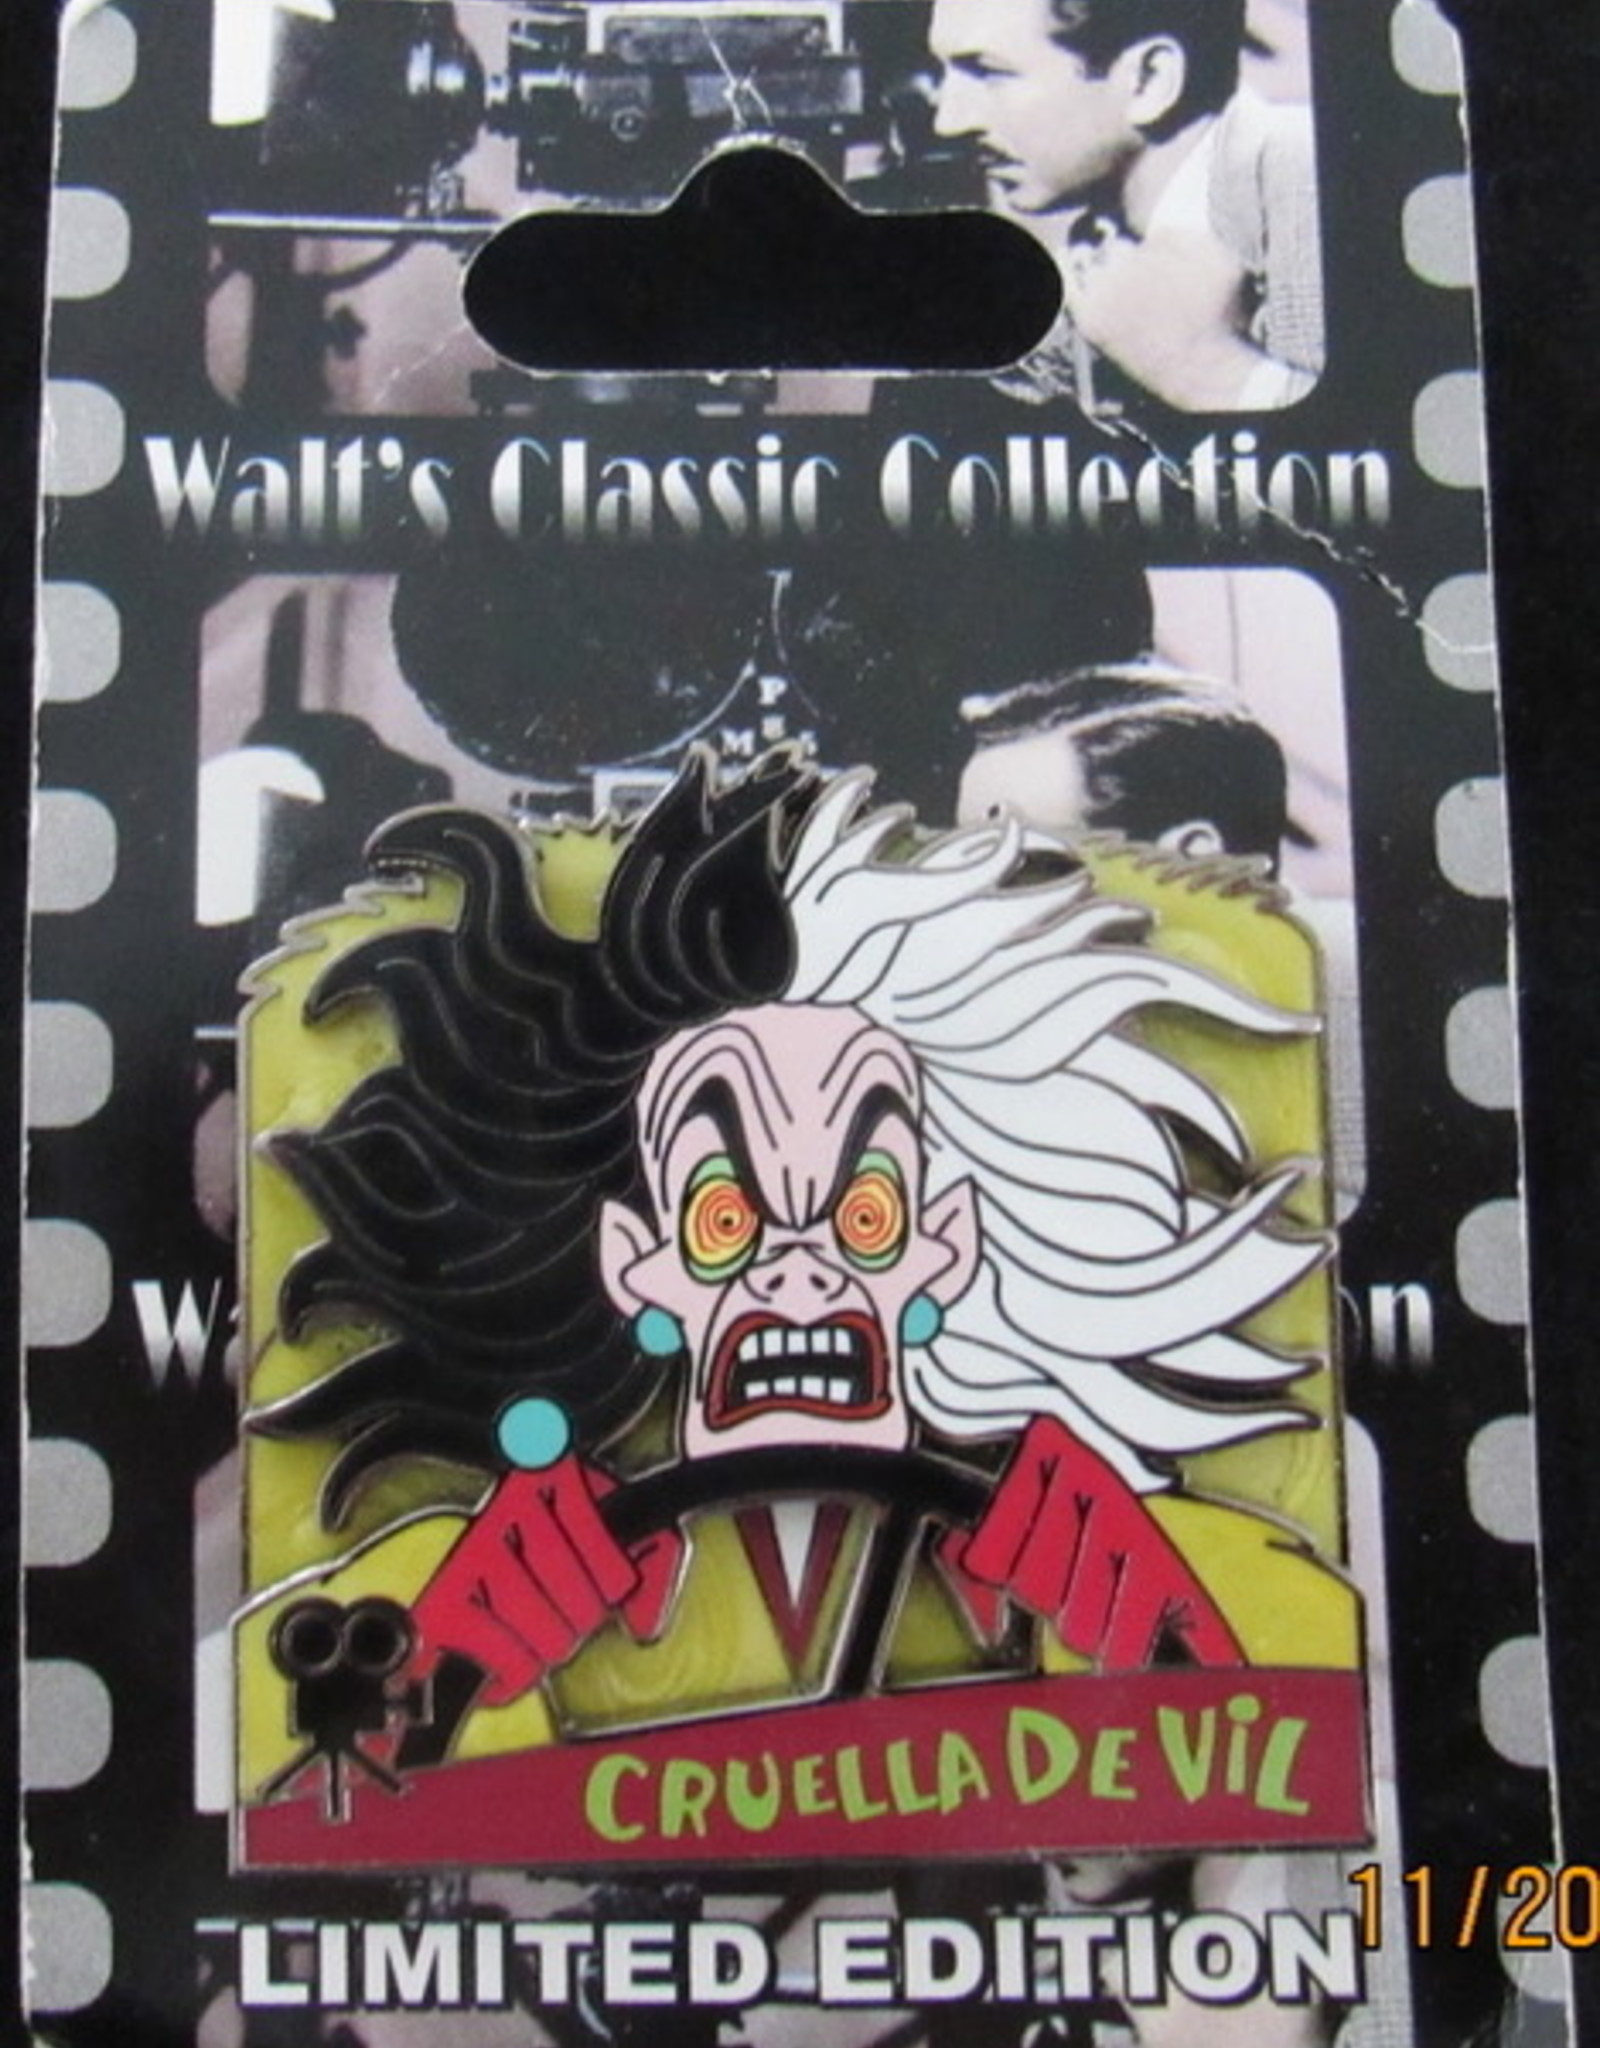 Walt's classic collection 101 Ddalmations Cruella de Vil LE DISNEY PIN 73763